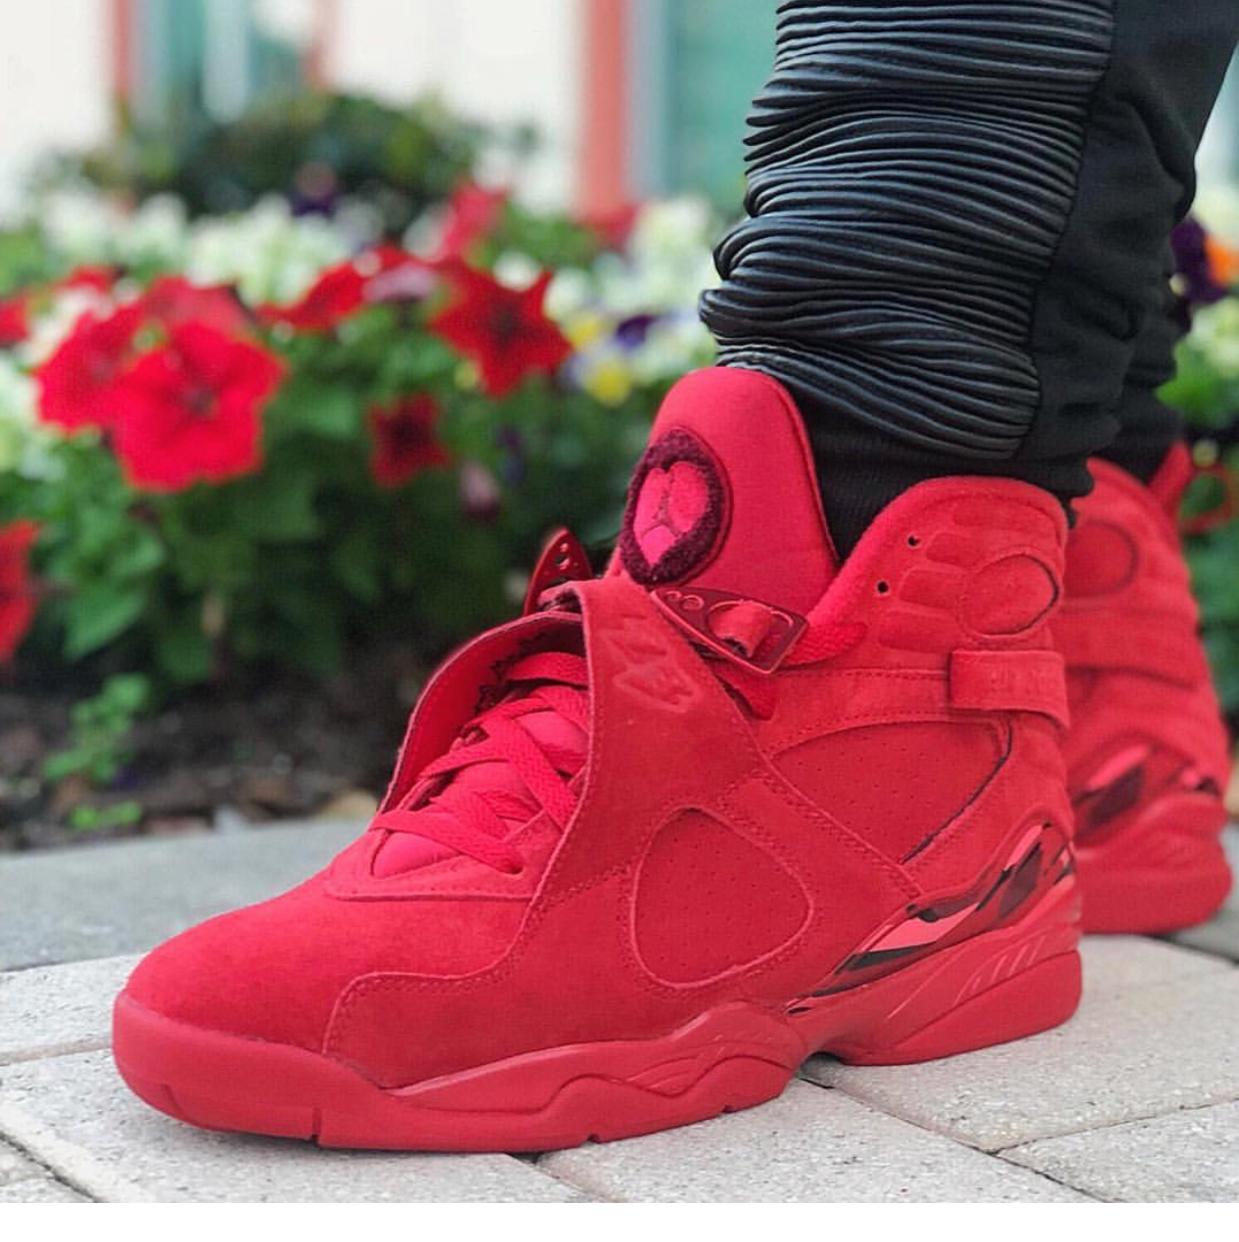 Air Jordan 8 WMNS Valentine's Day